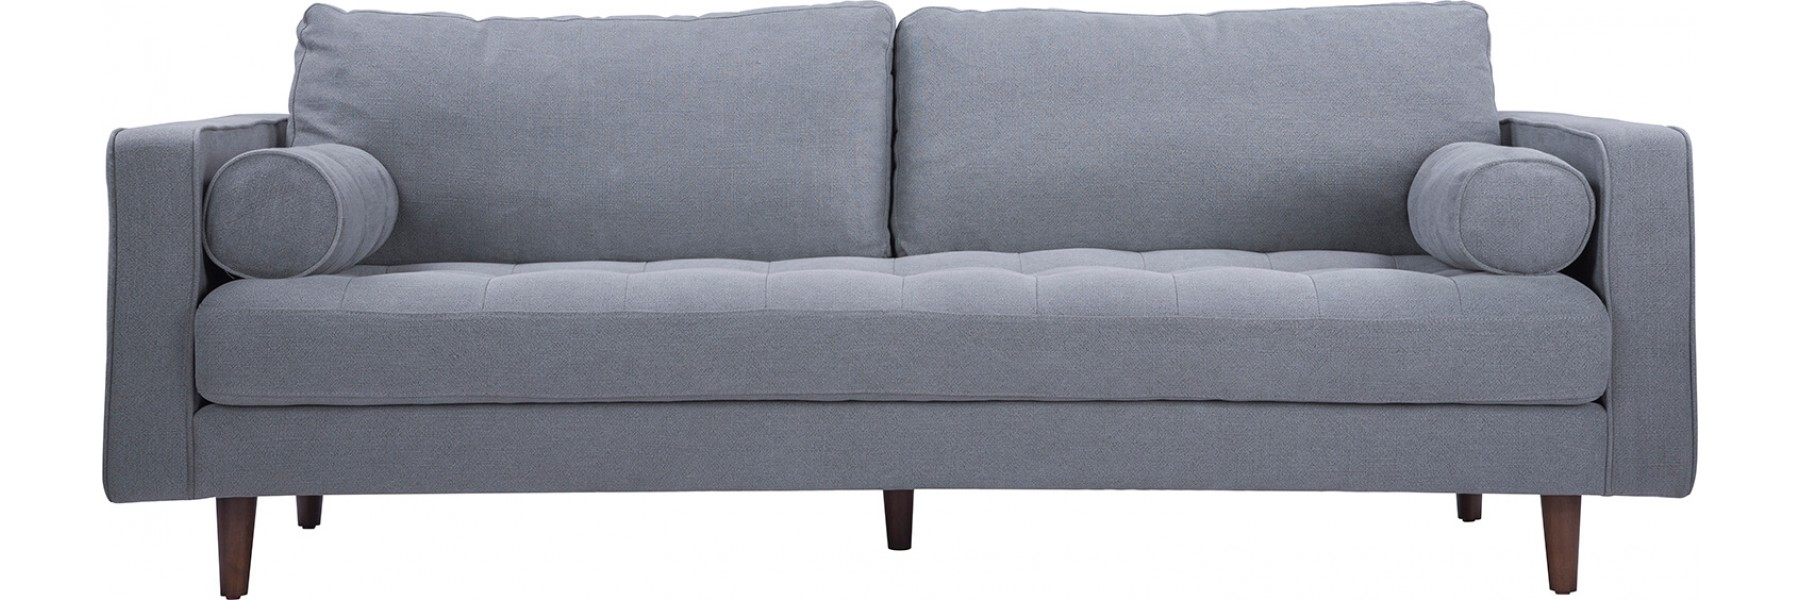 Sawyer Sofa Stoned Slate Pertaining To Nico Grey Sectionals With Left Facing Storage Chaise (View 15 of 25)